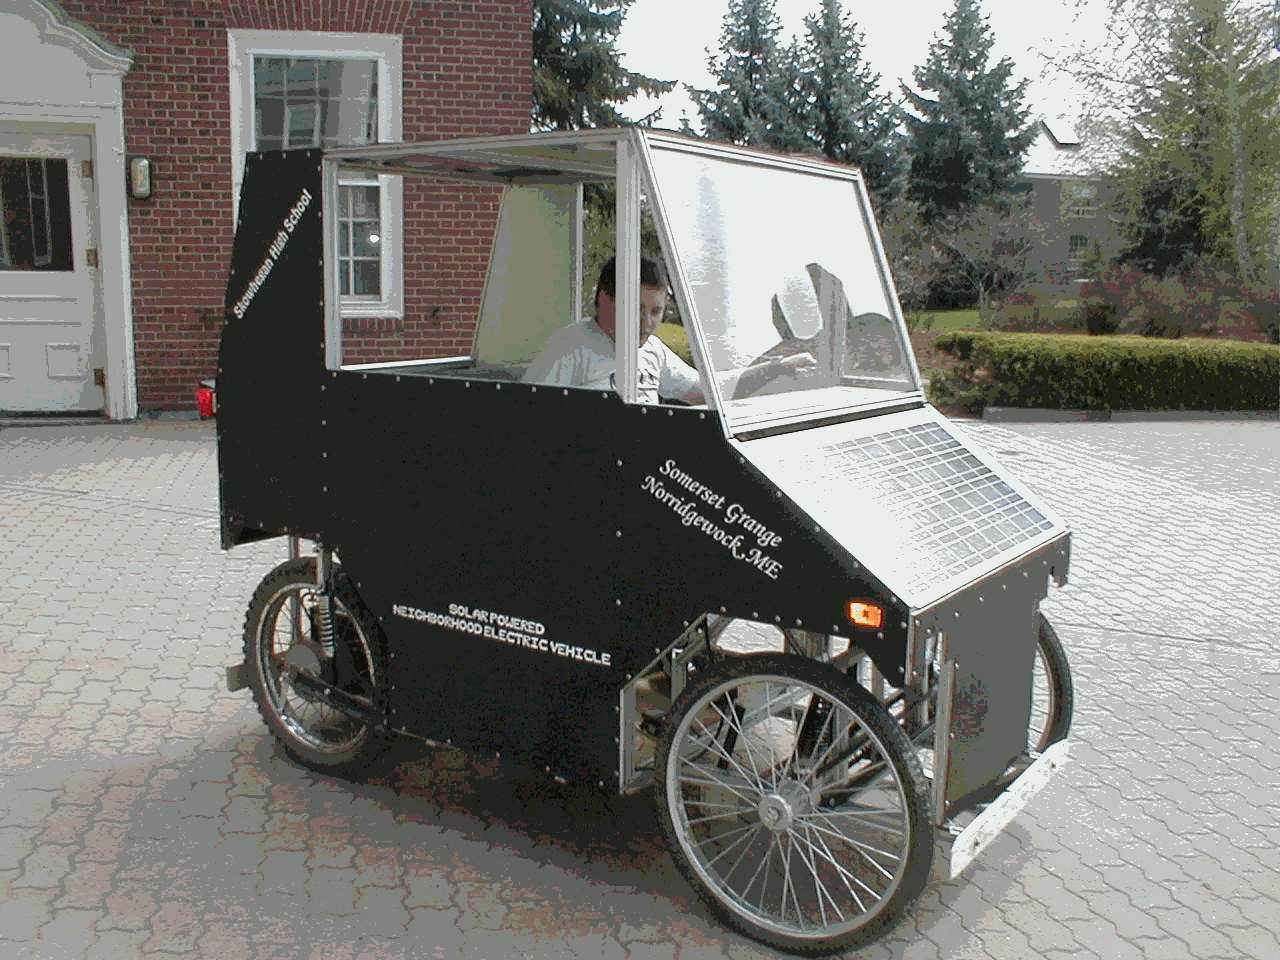 Harness The Sun's Power With Your Own Solar Car Kit